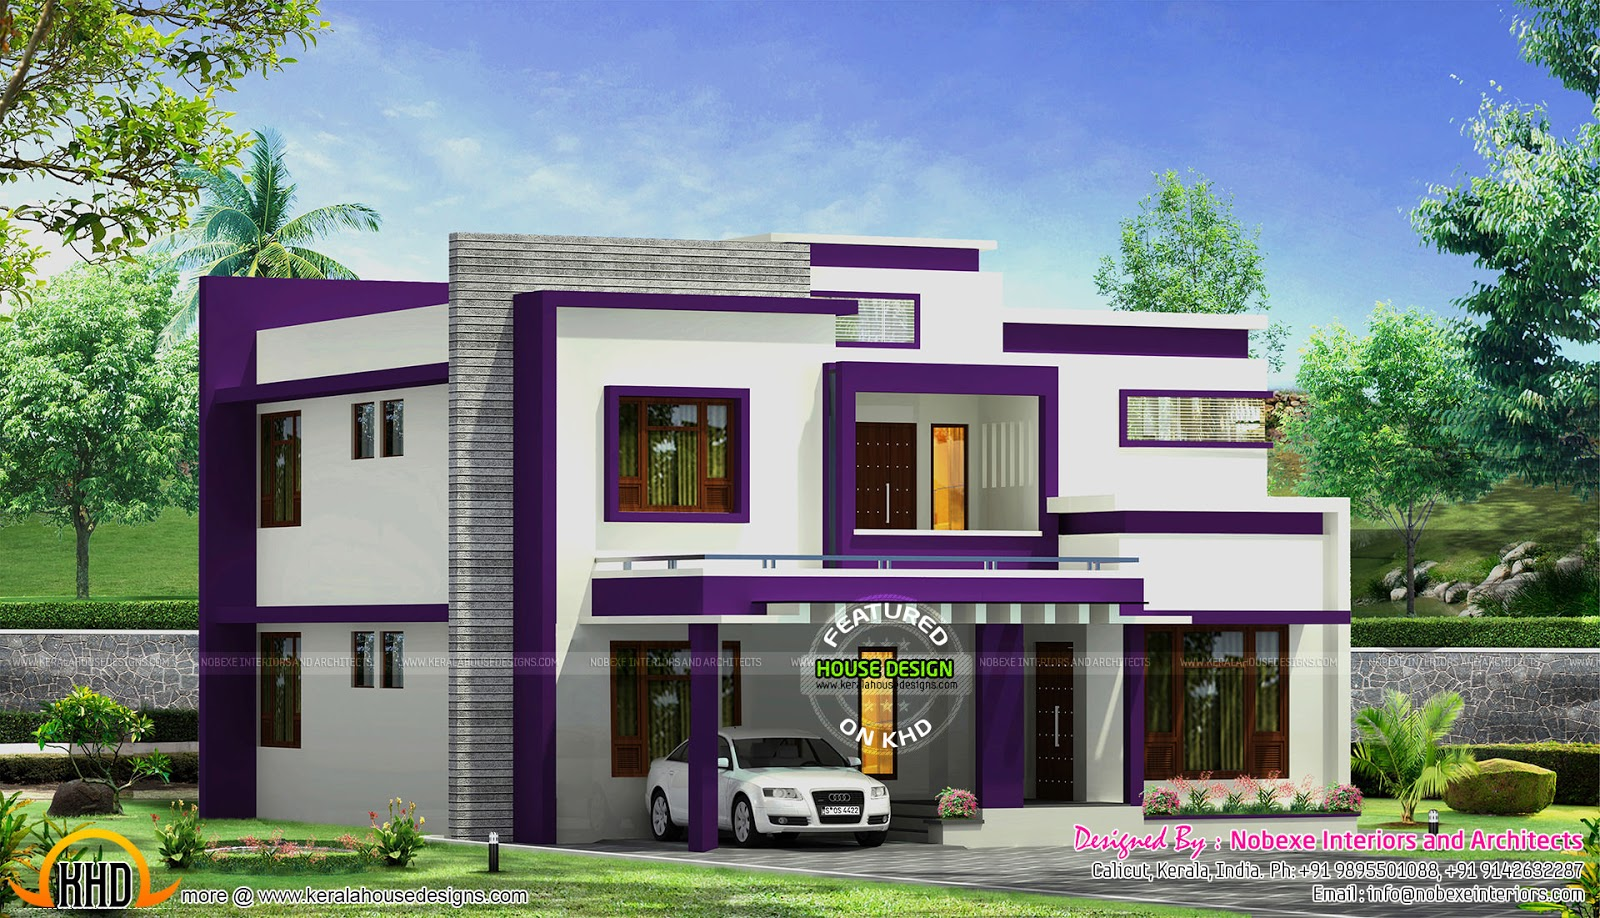 Contemporary home design by nobexe interiors kerala home for Home design images